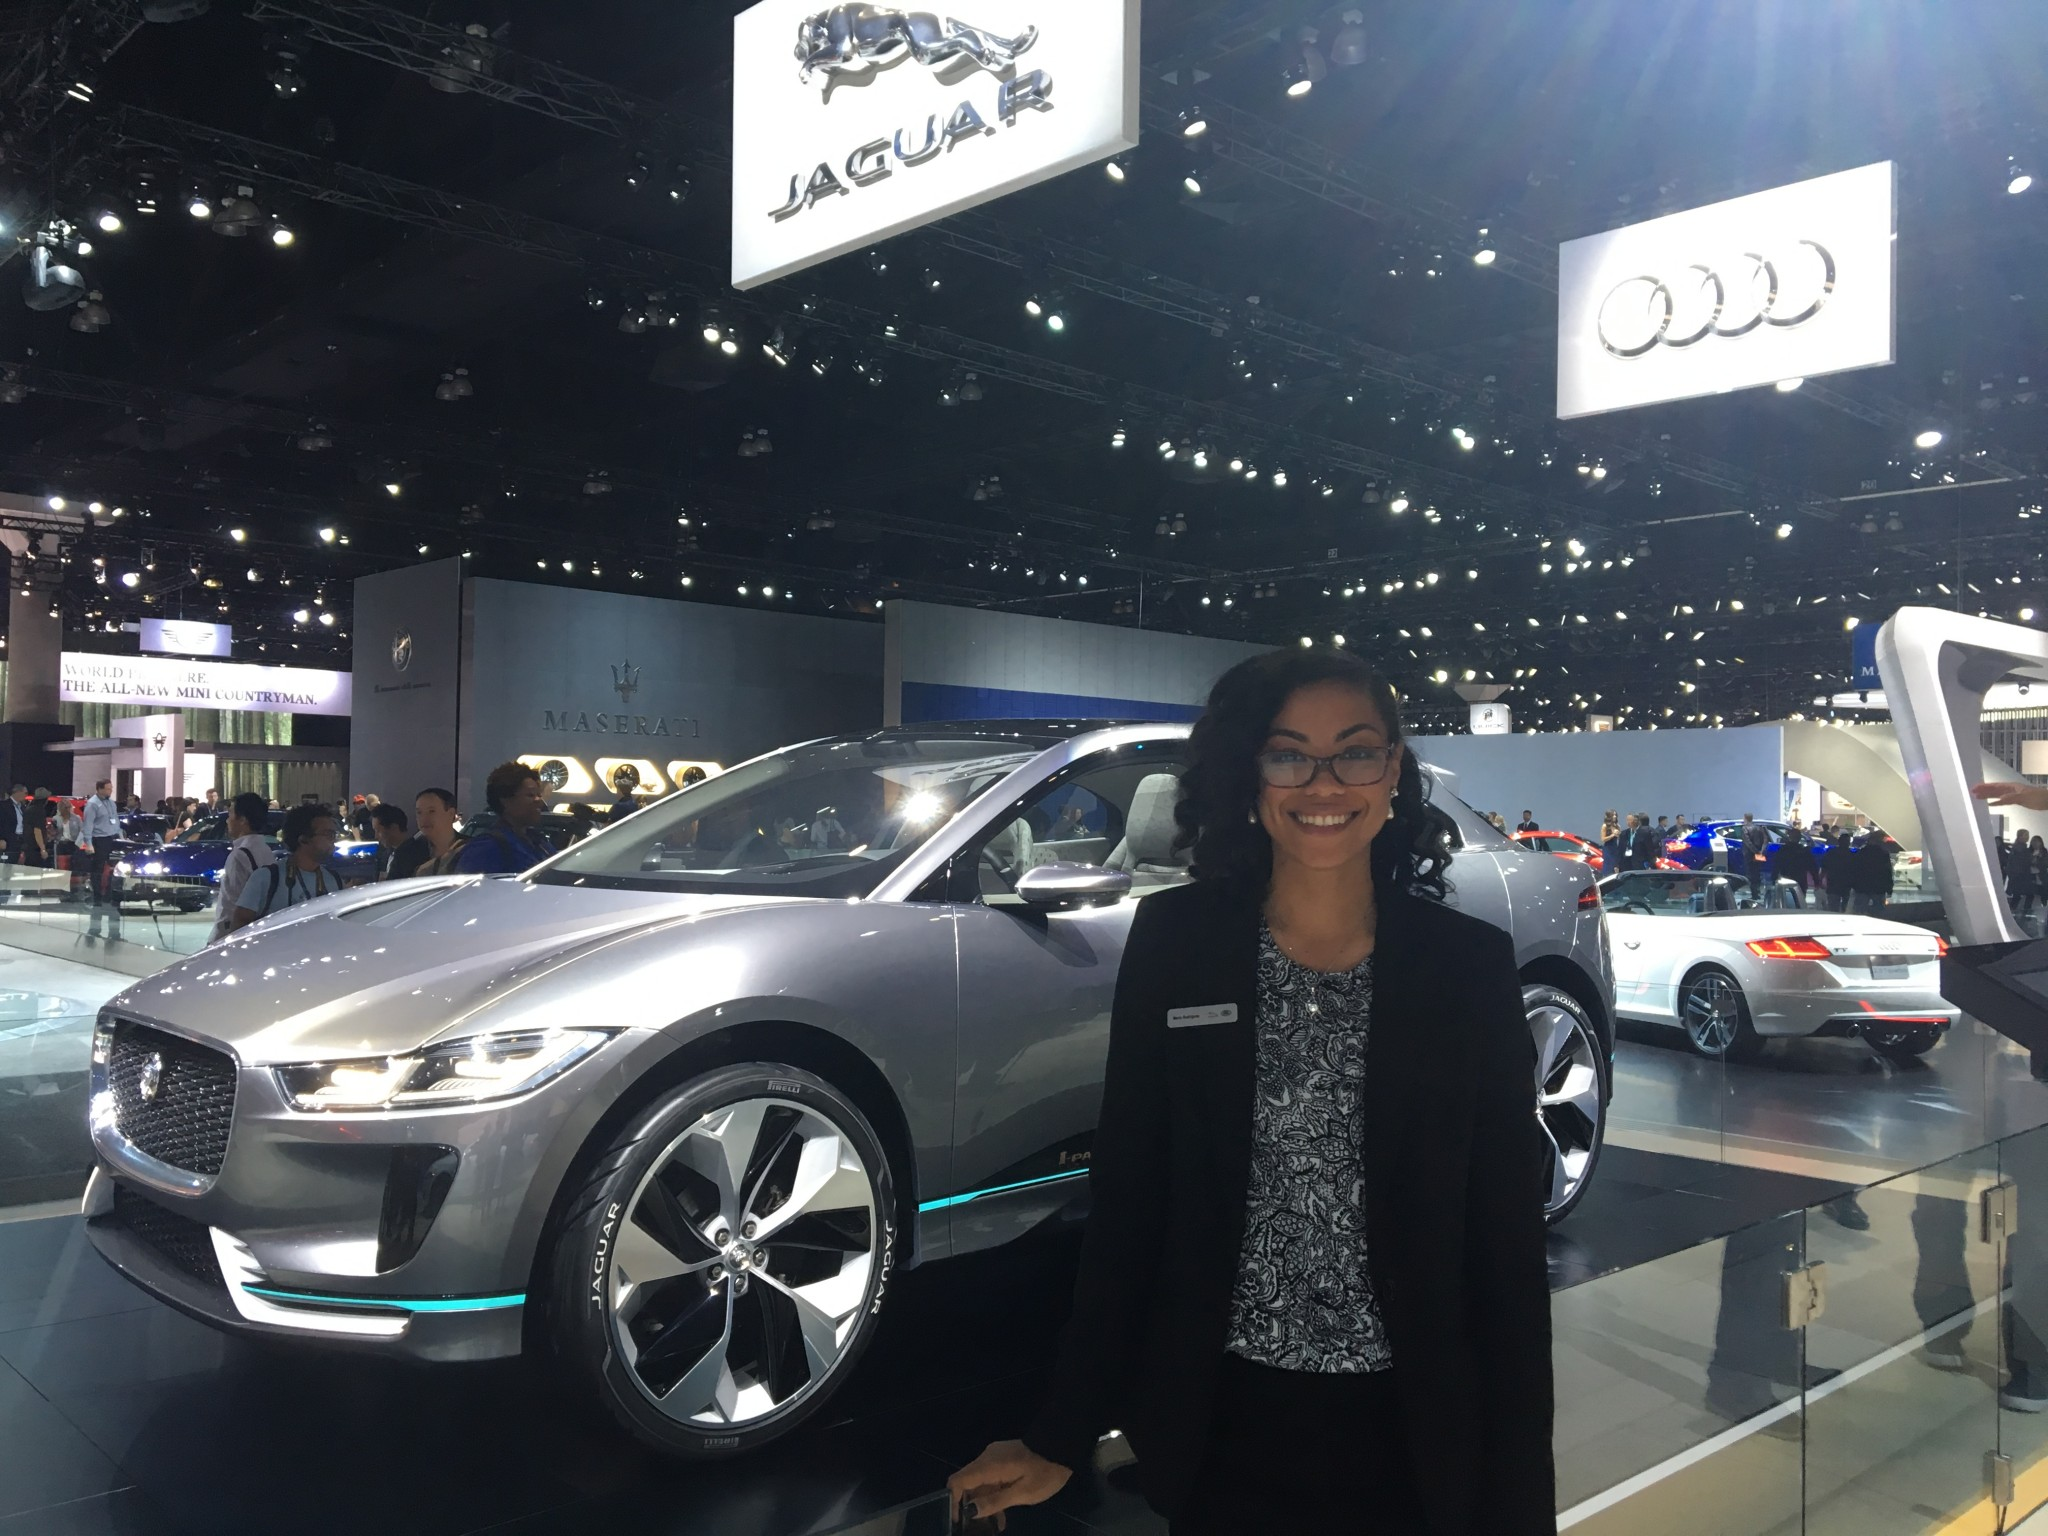 Maria Rodriguez with Jaguar Land Rover, in front of the new I-Pace electric concept car.